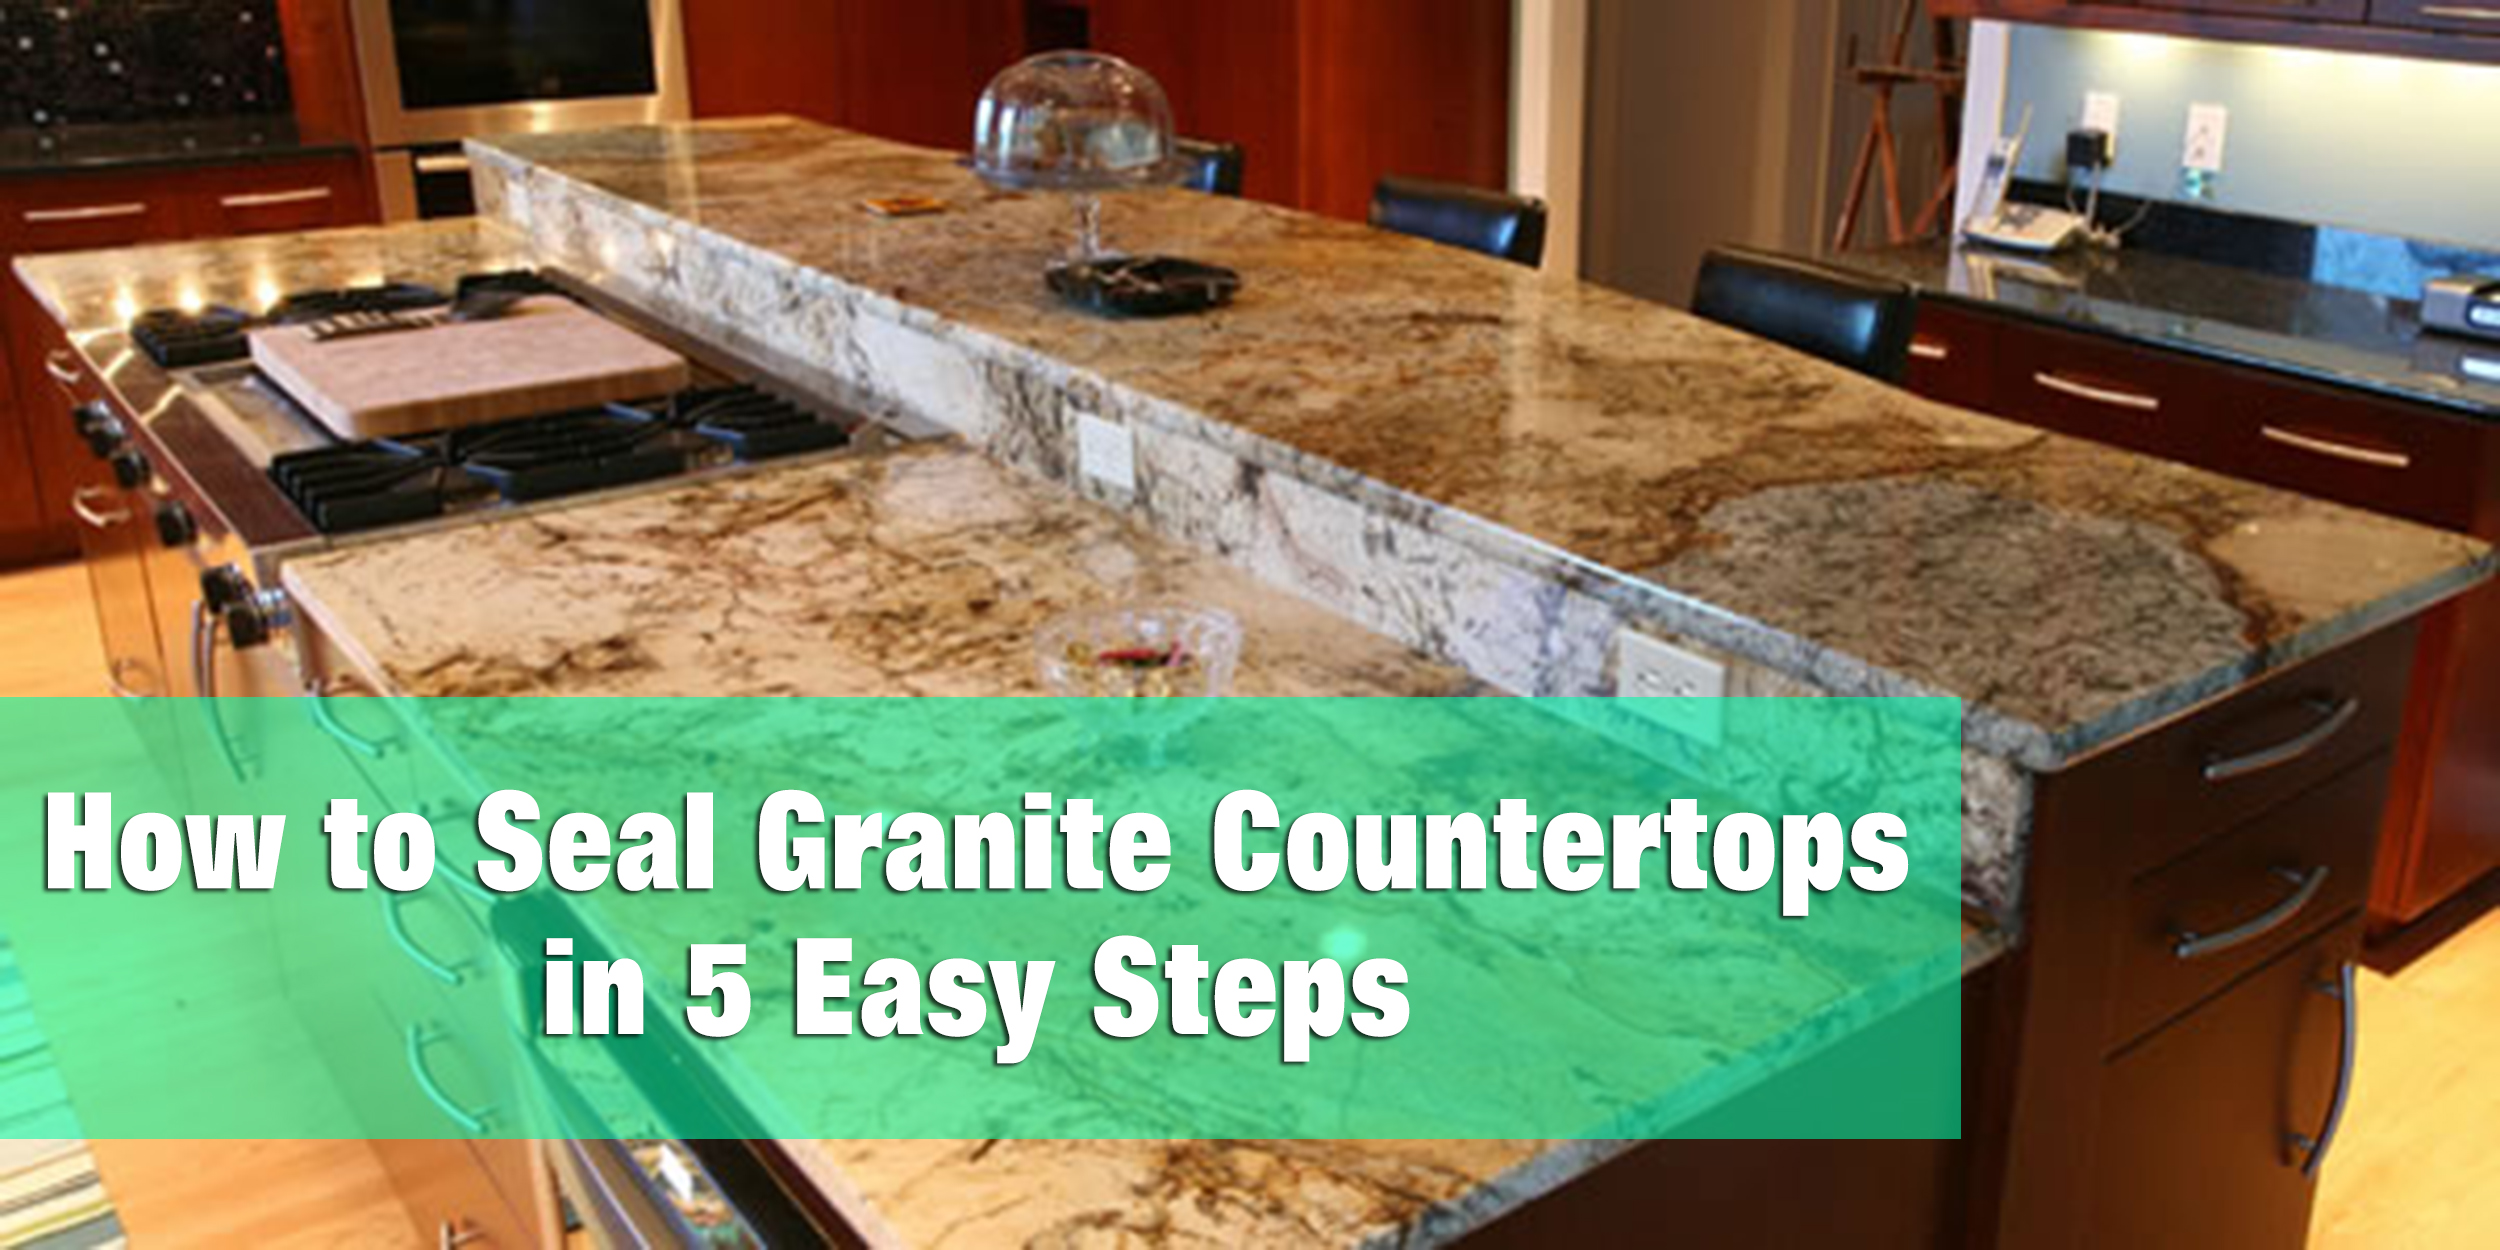 Natural Way To Clean Granite Countertops How To Seal Granite Countertops